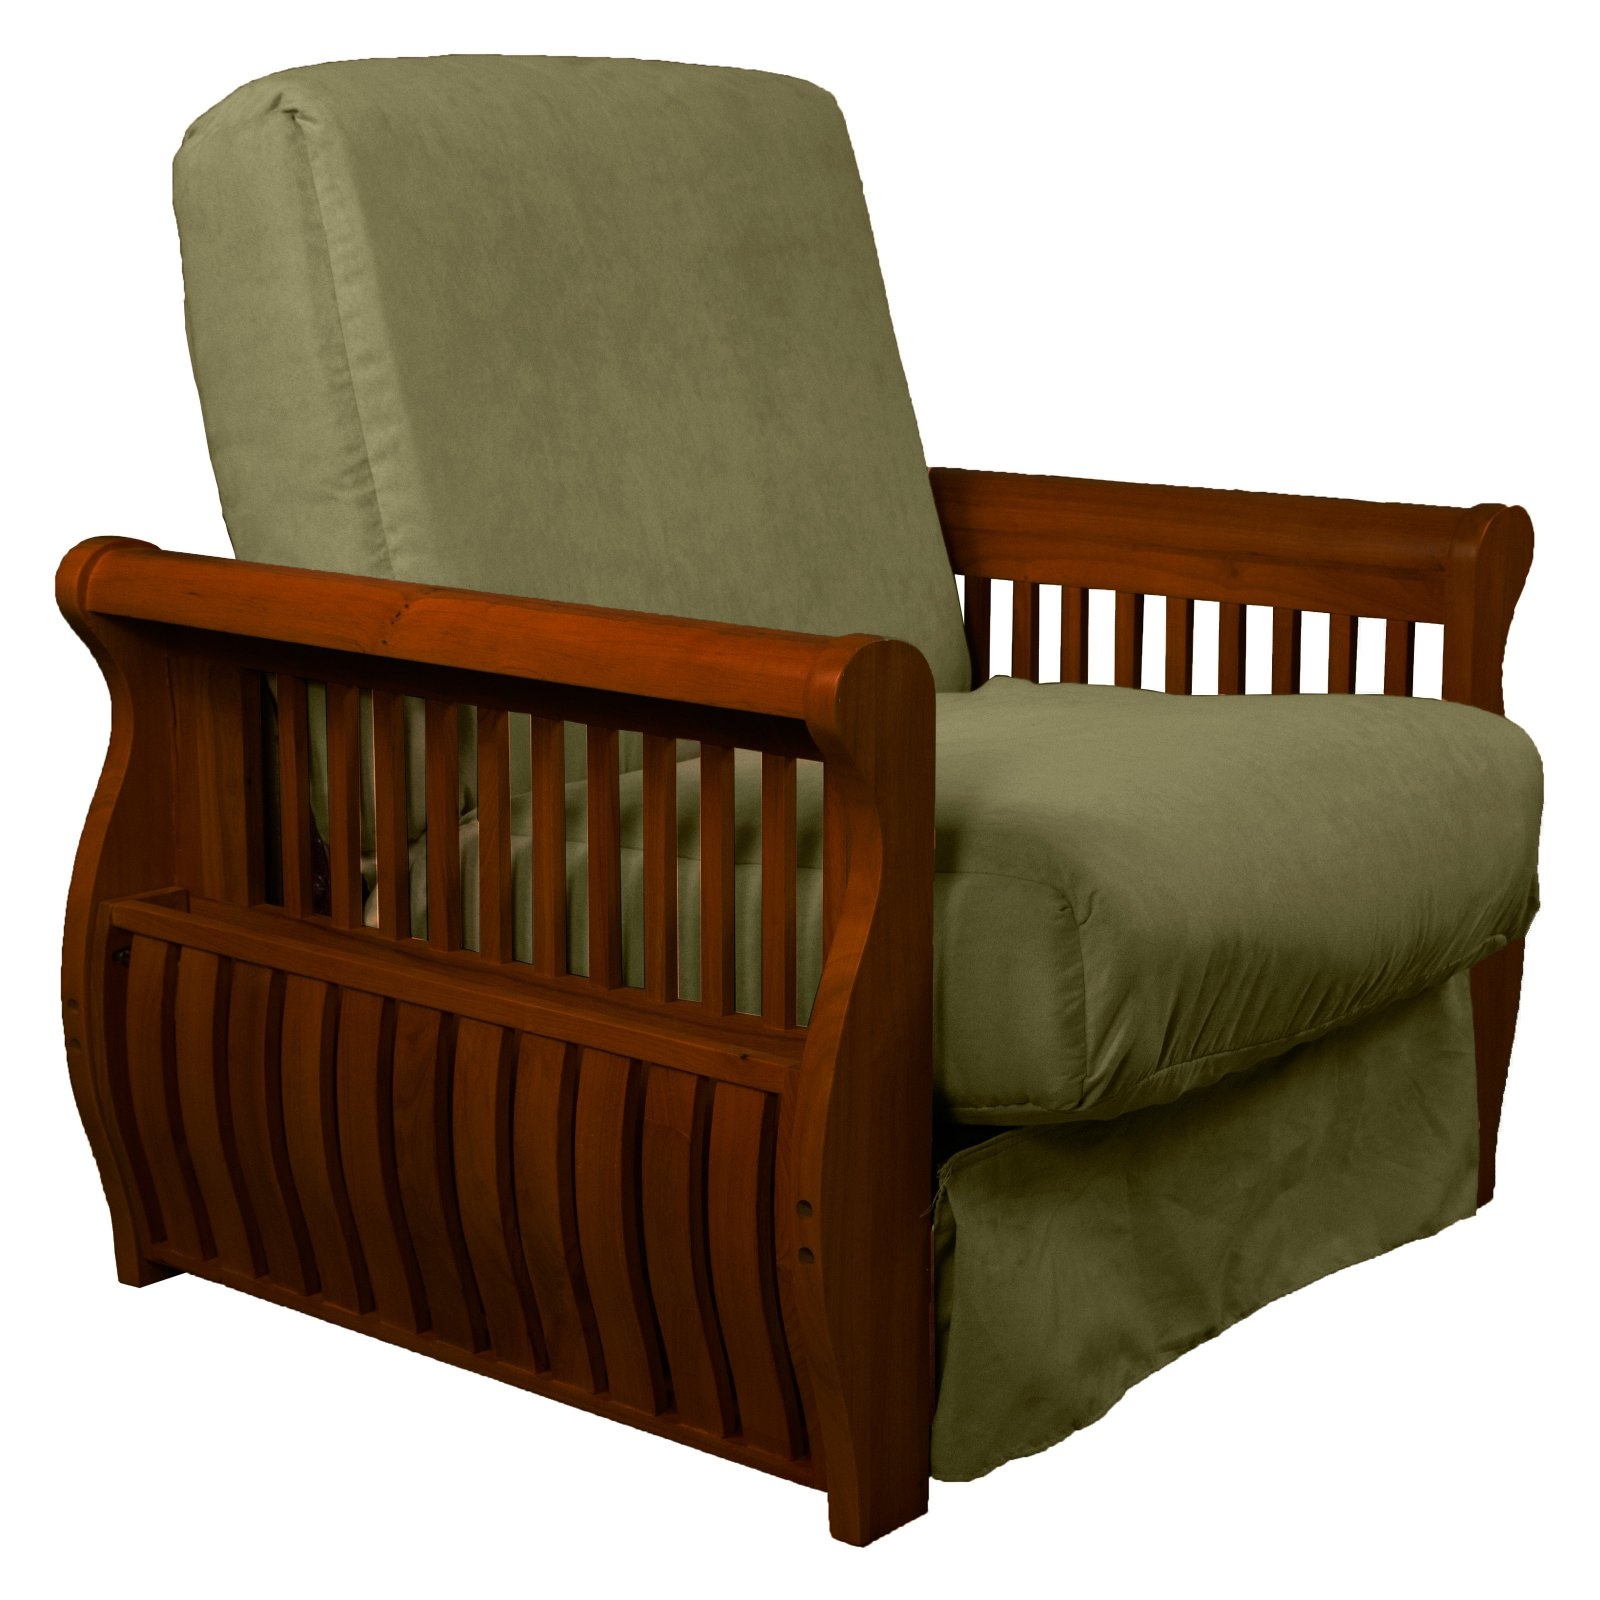 Epic Home Furnishings Sydney Perfect Sit U0026 Sleep Pocketed Coil Innerspring  With Pillow Top Sleeper Chair